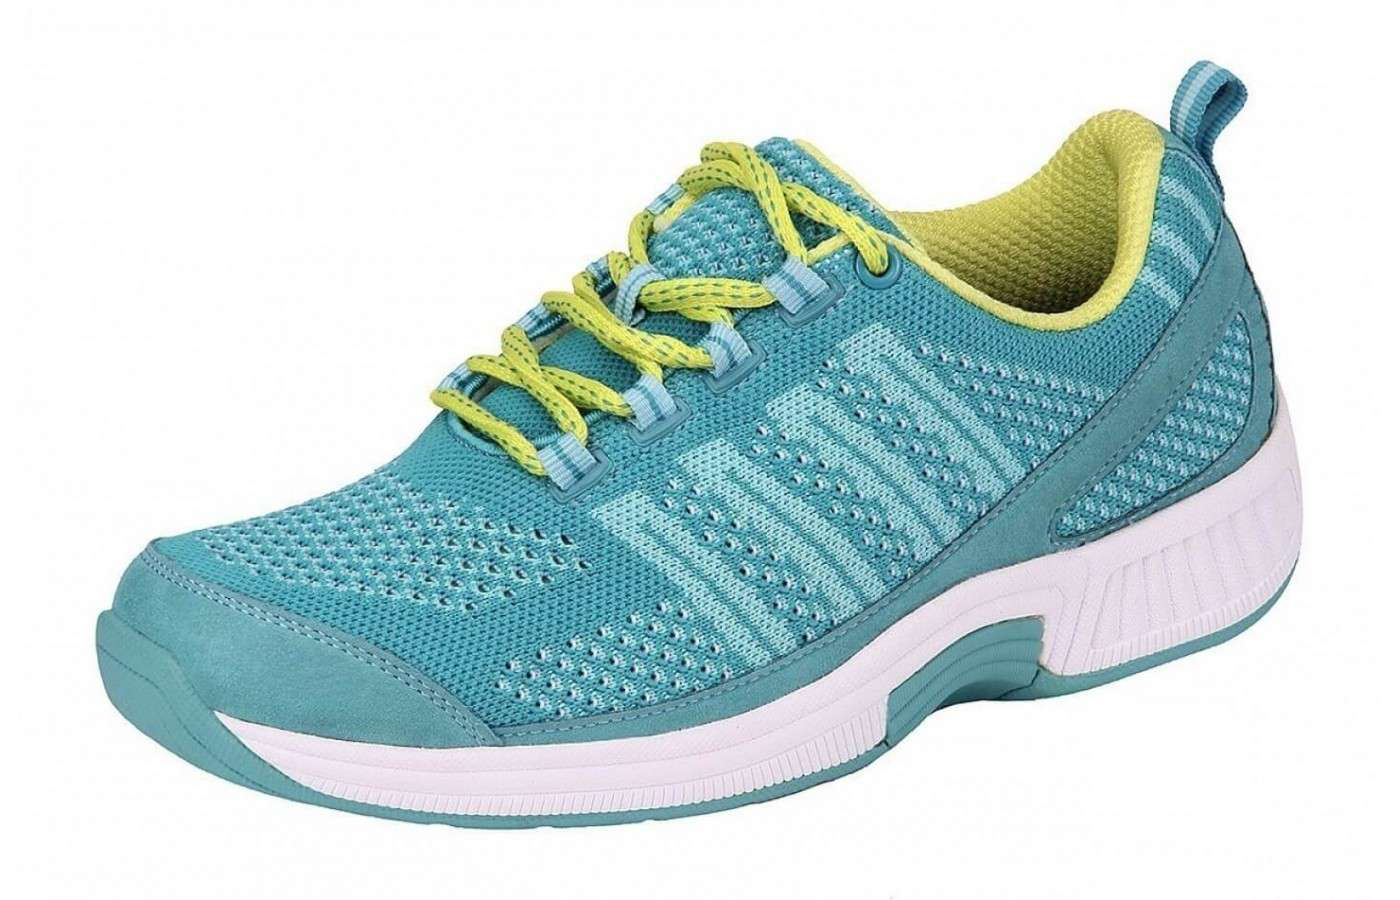 Orthofeet Coral Stretchable Shoe